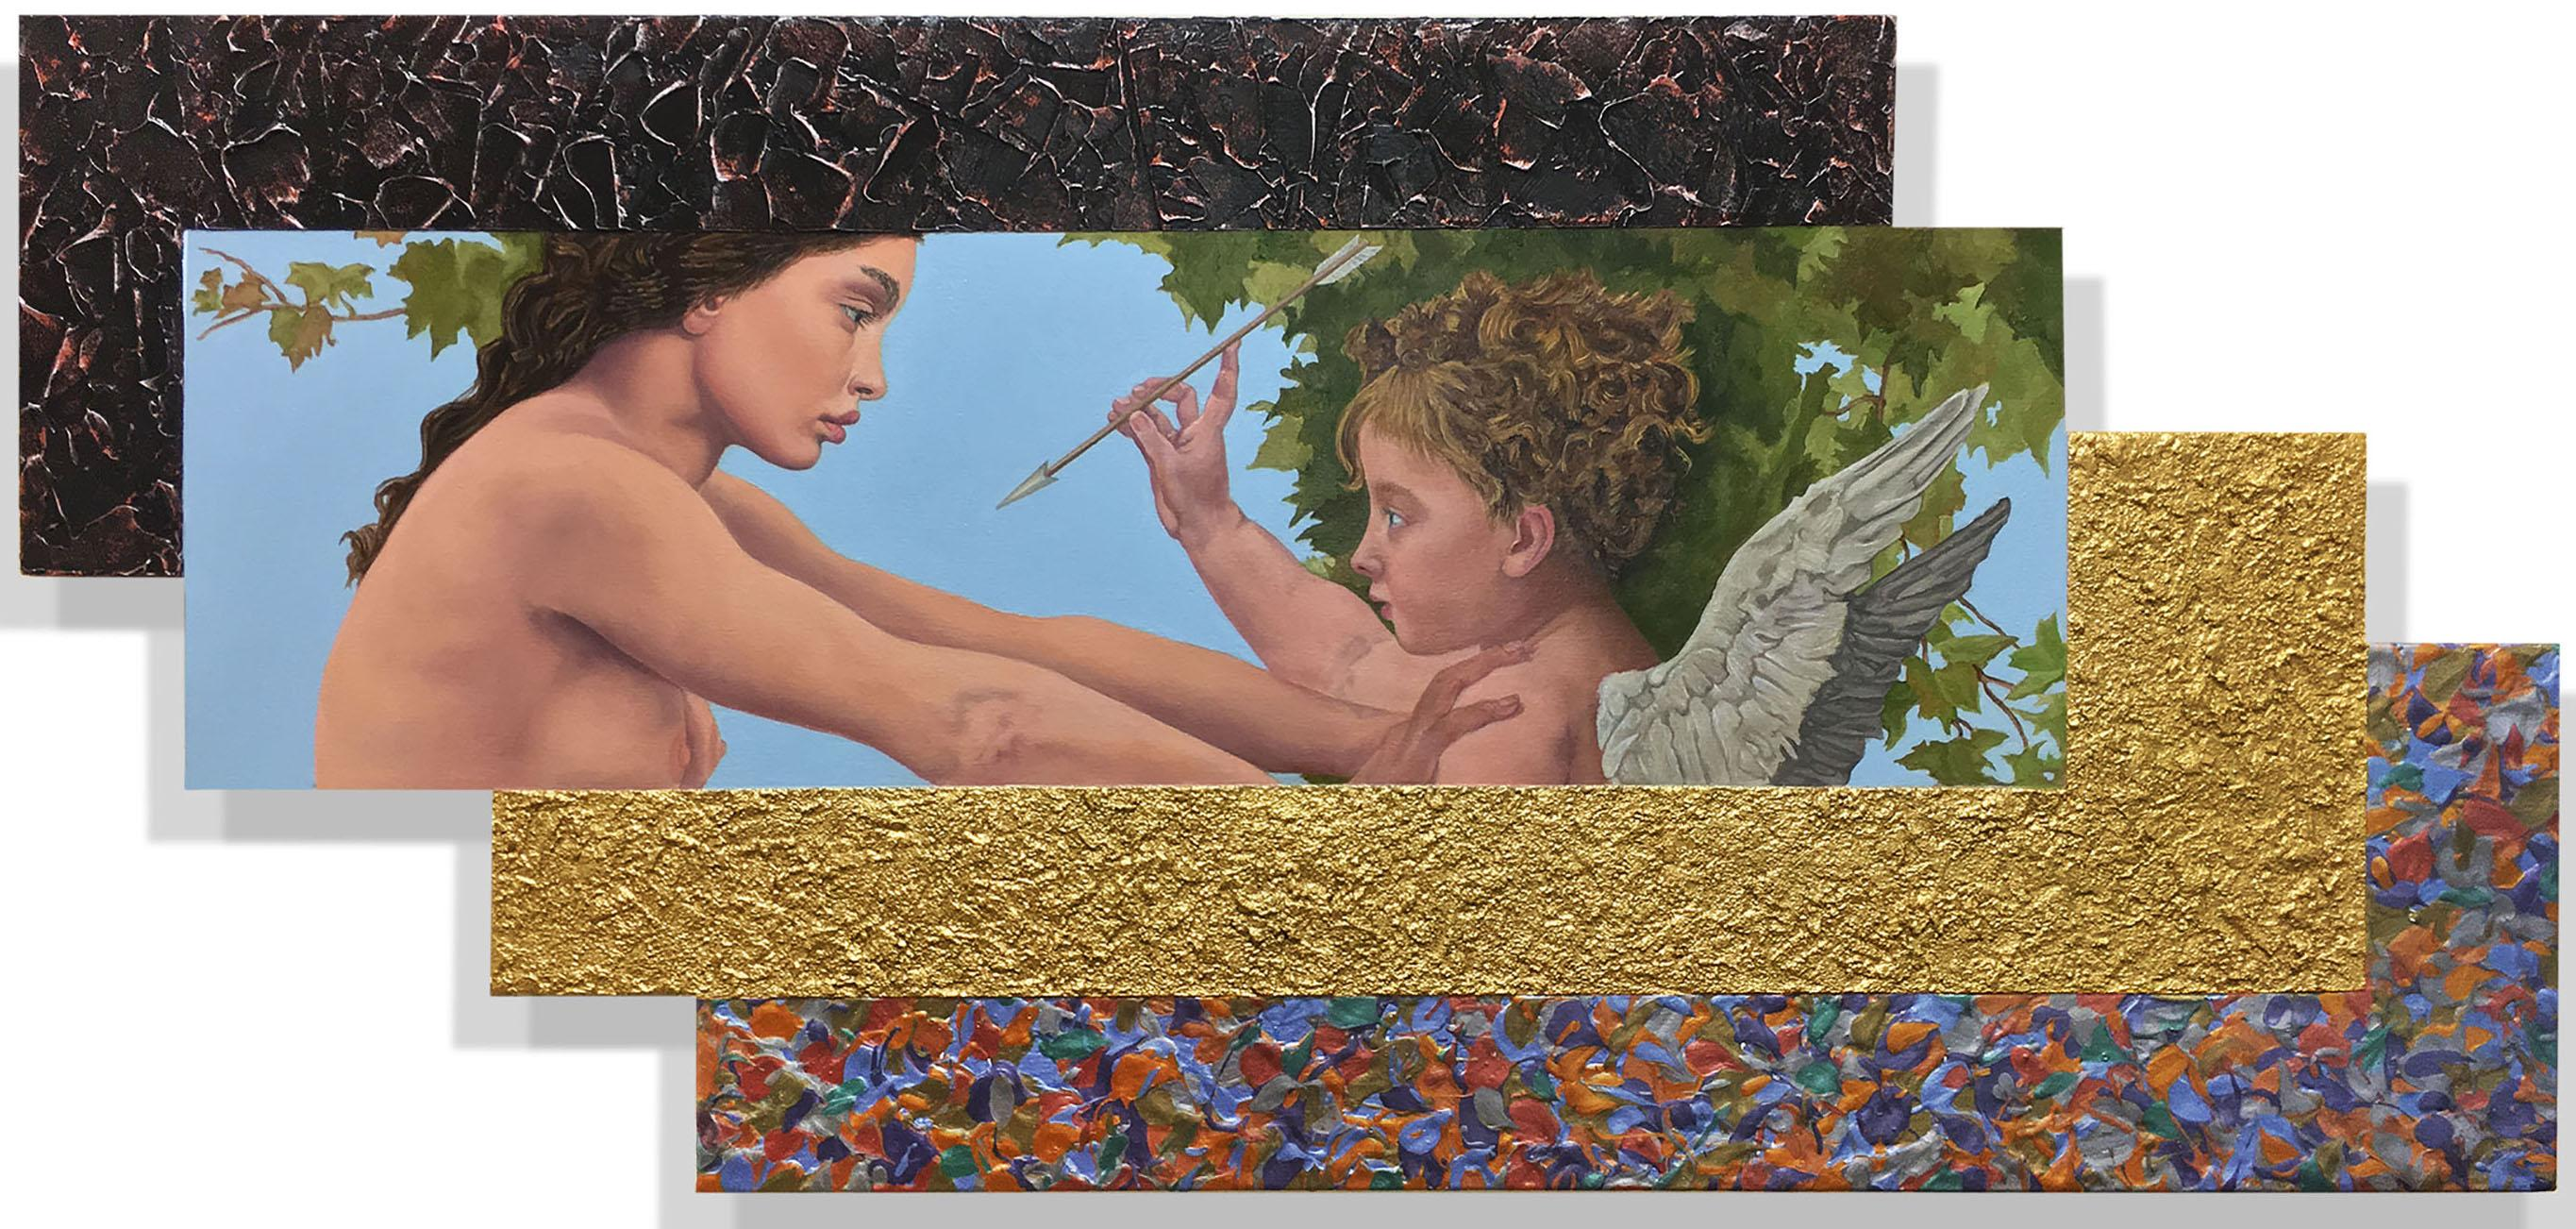 Jack Reilly, Young Eros and the Girl (Tribite to Bouguereau), 2017